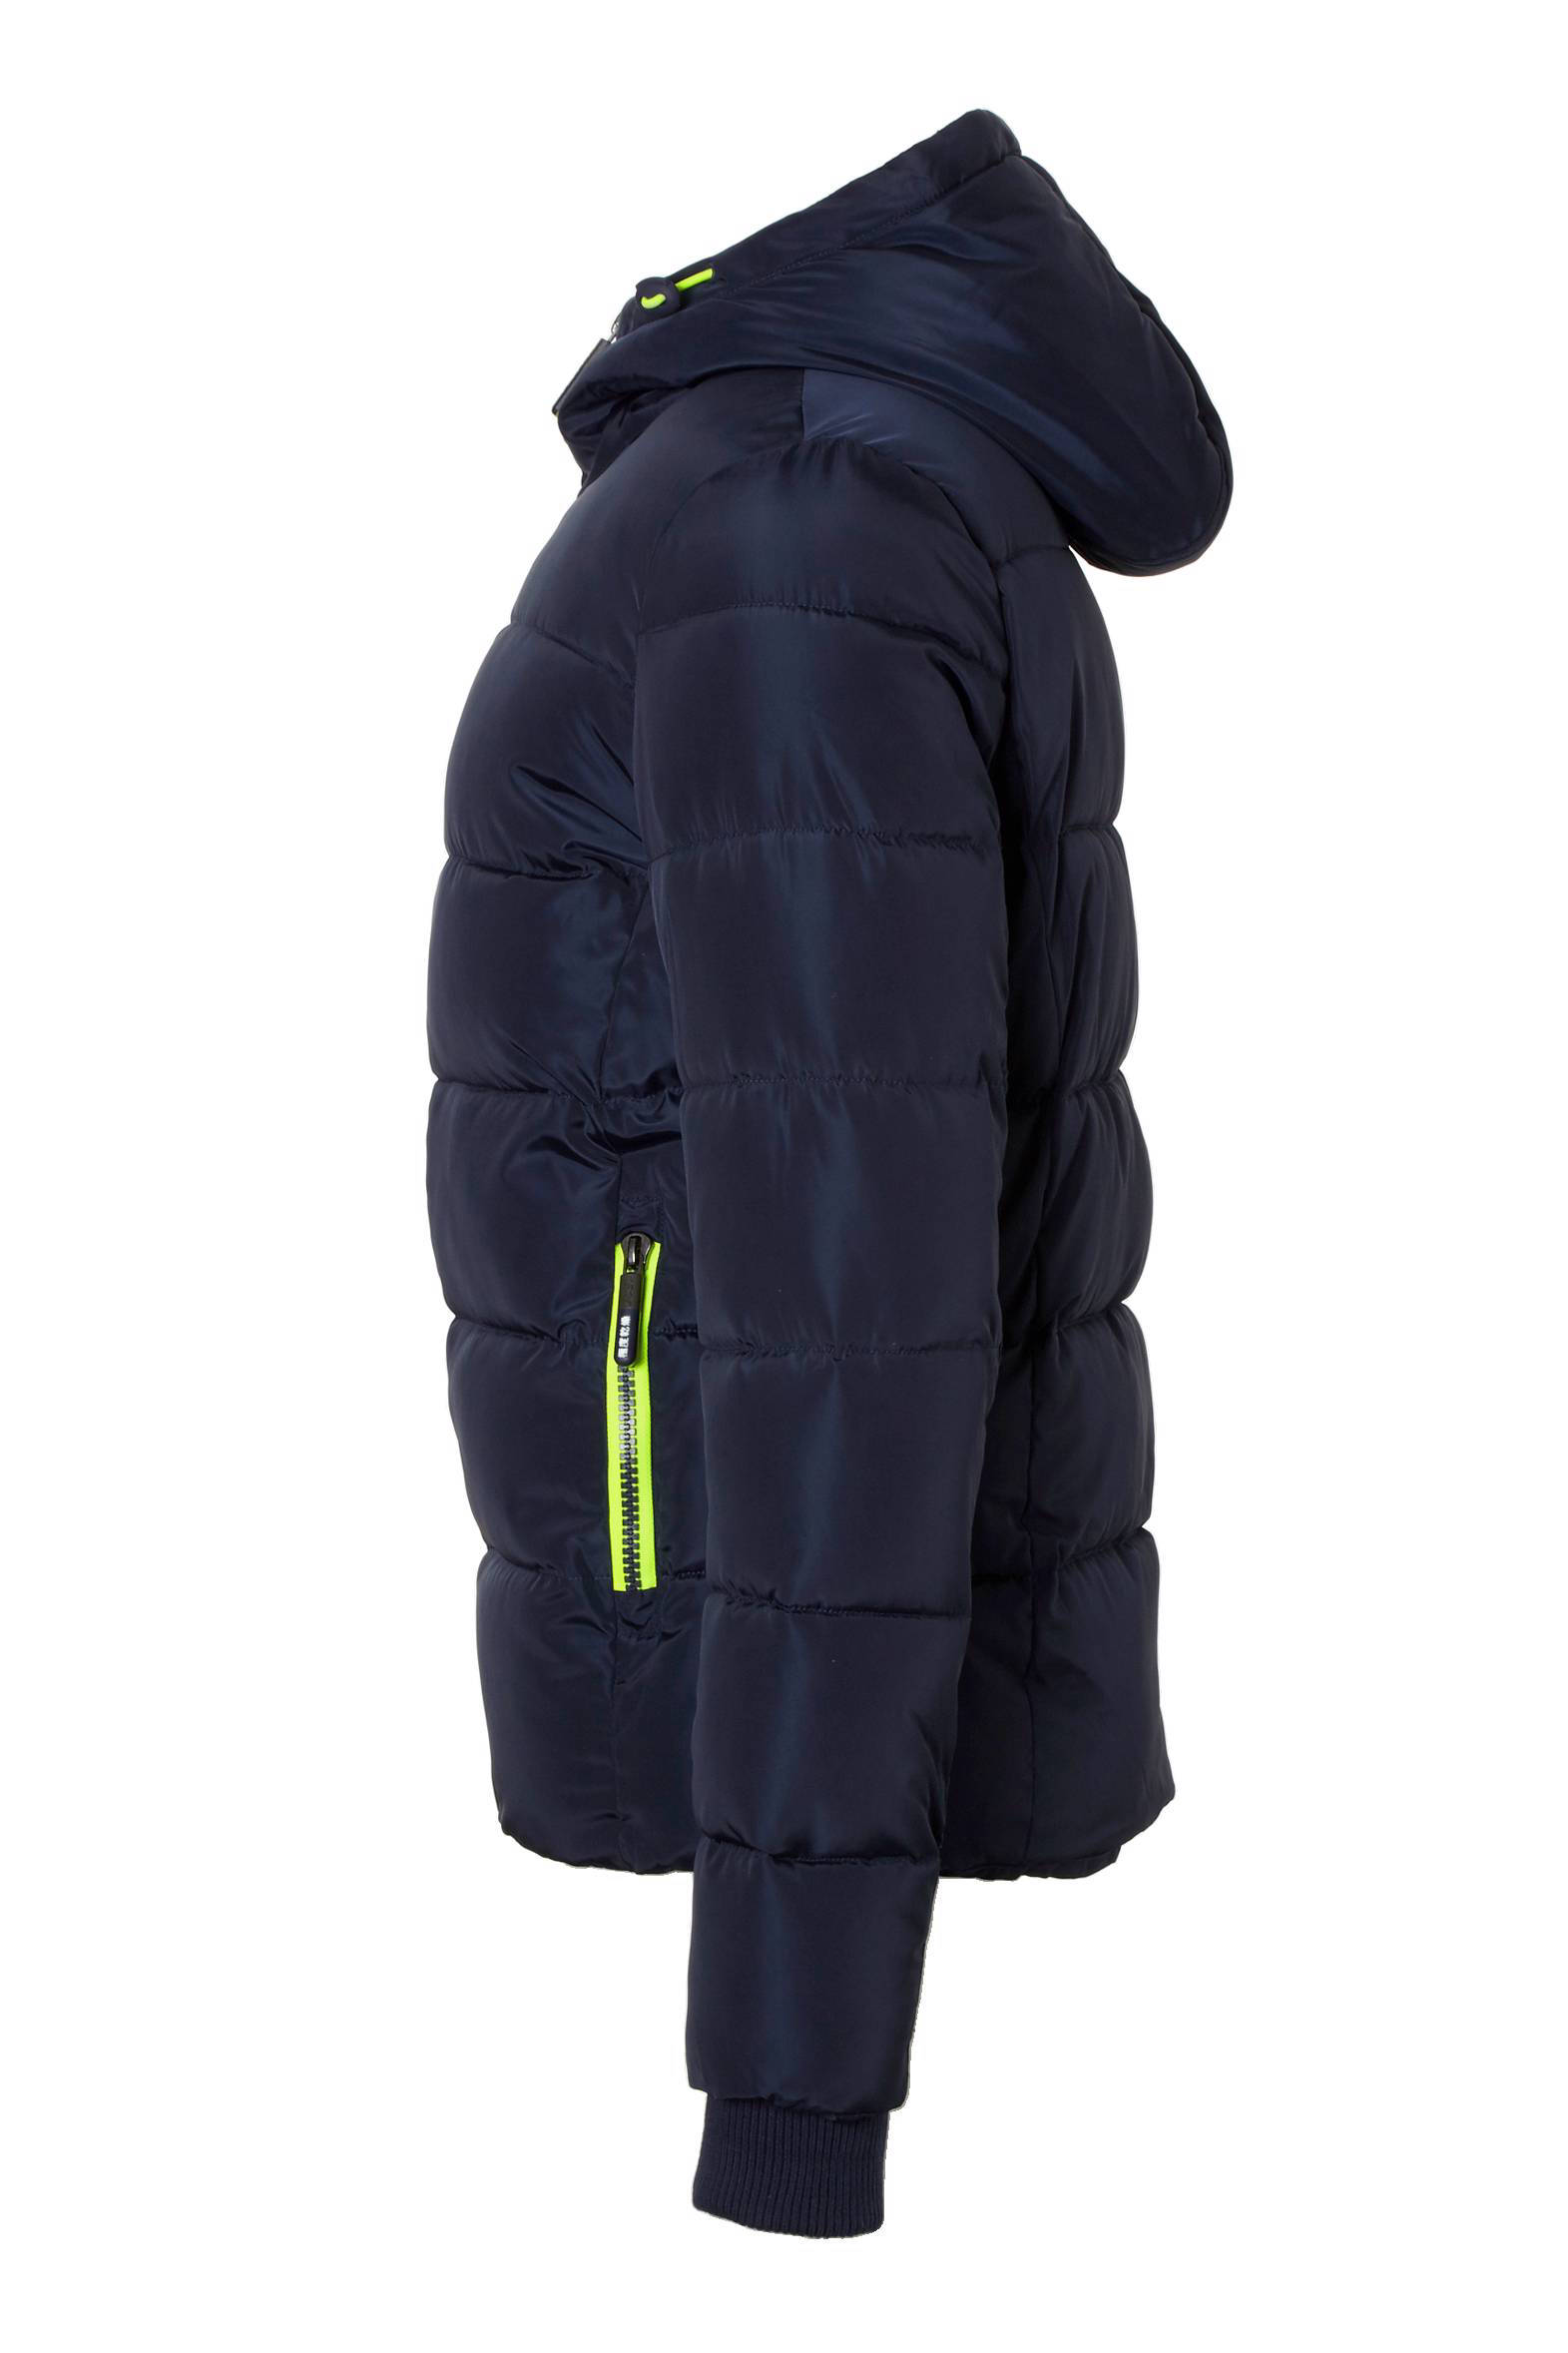 Winterjas Heren Sportief.Superdry Jas Wehkamp